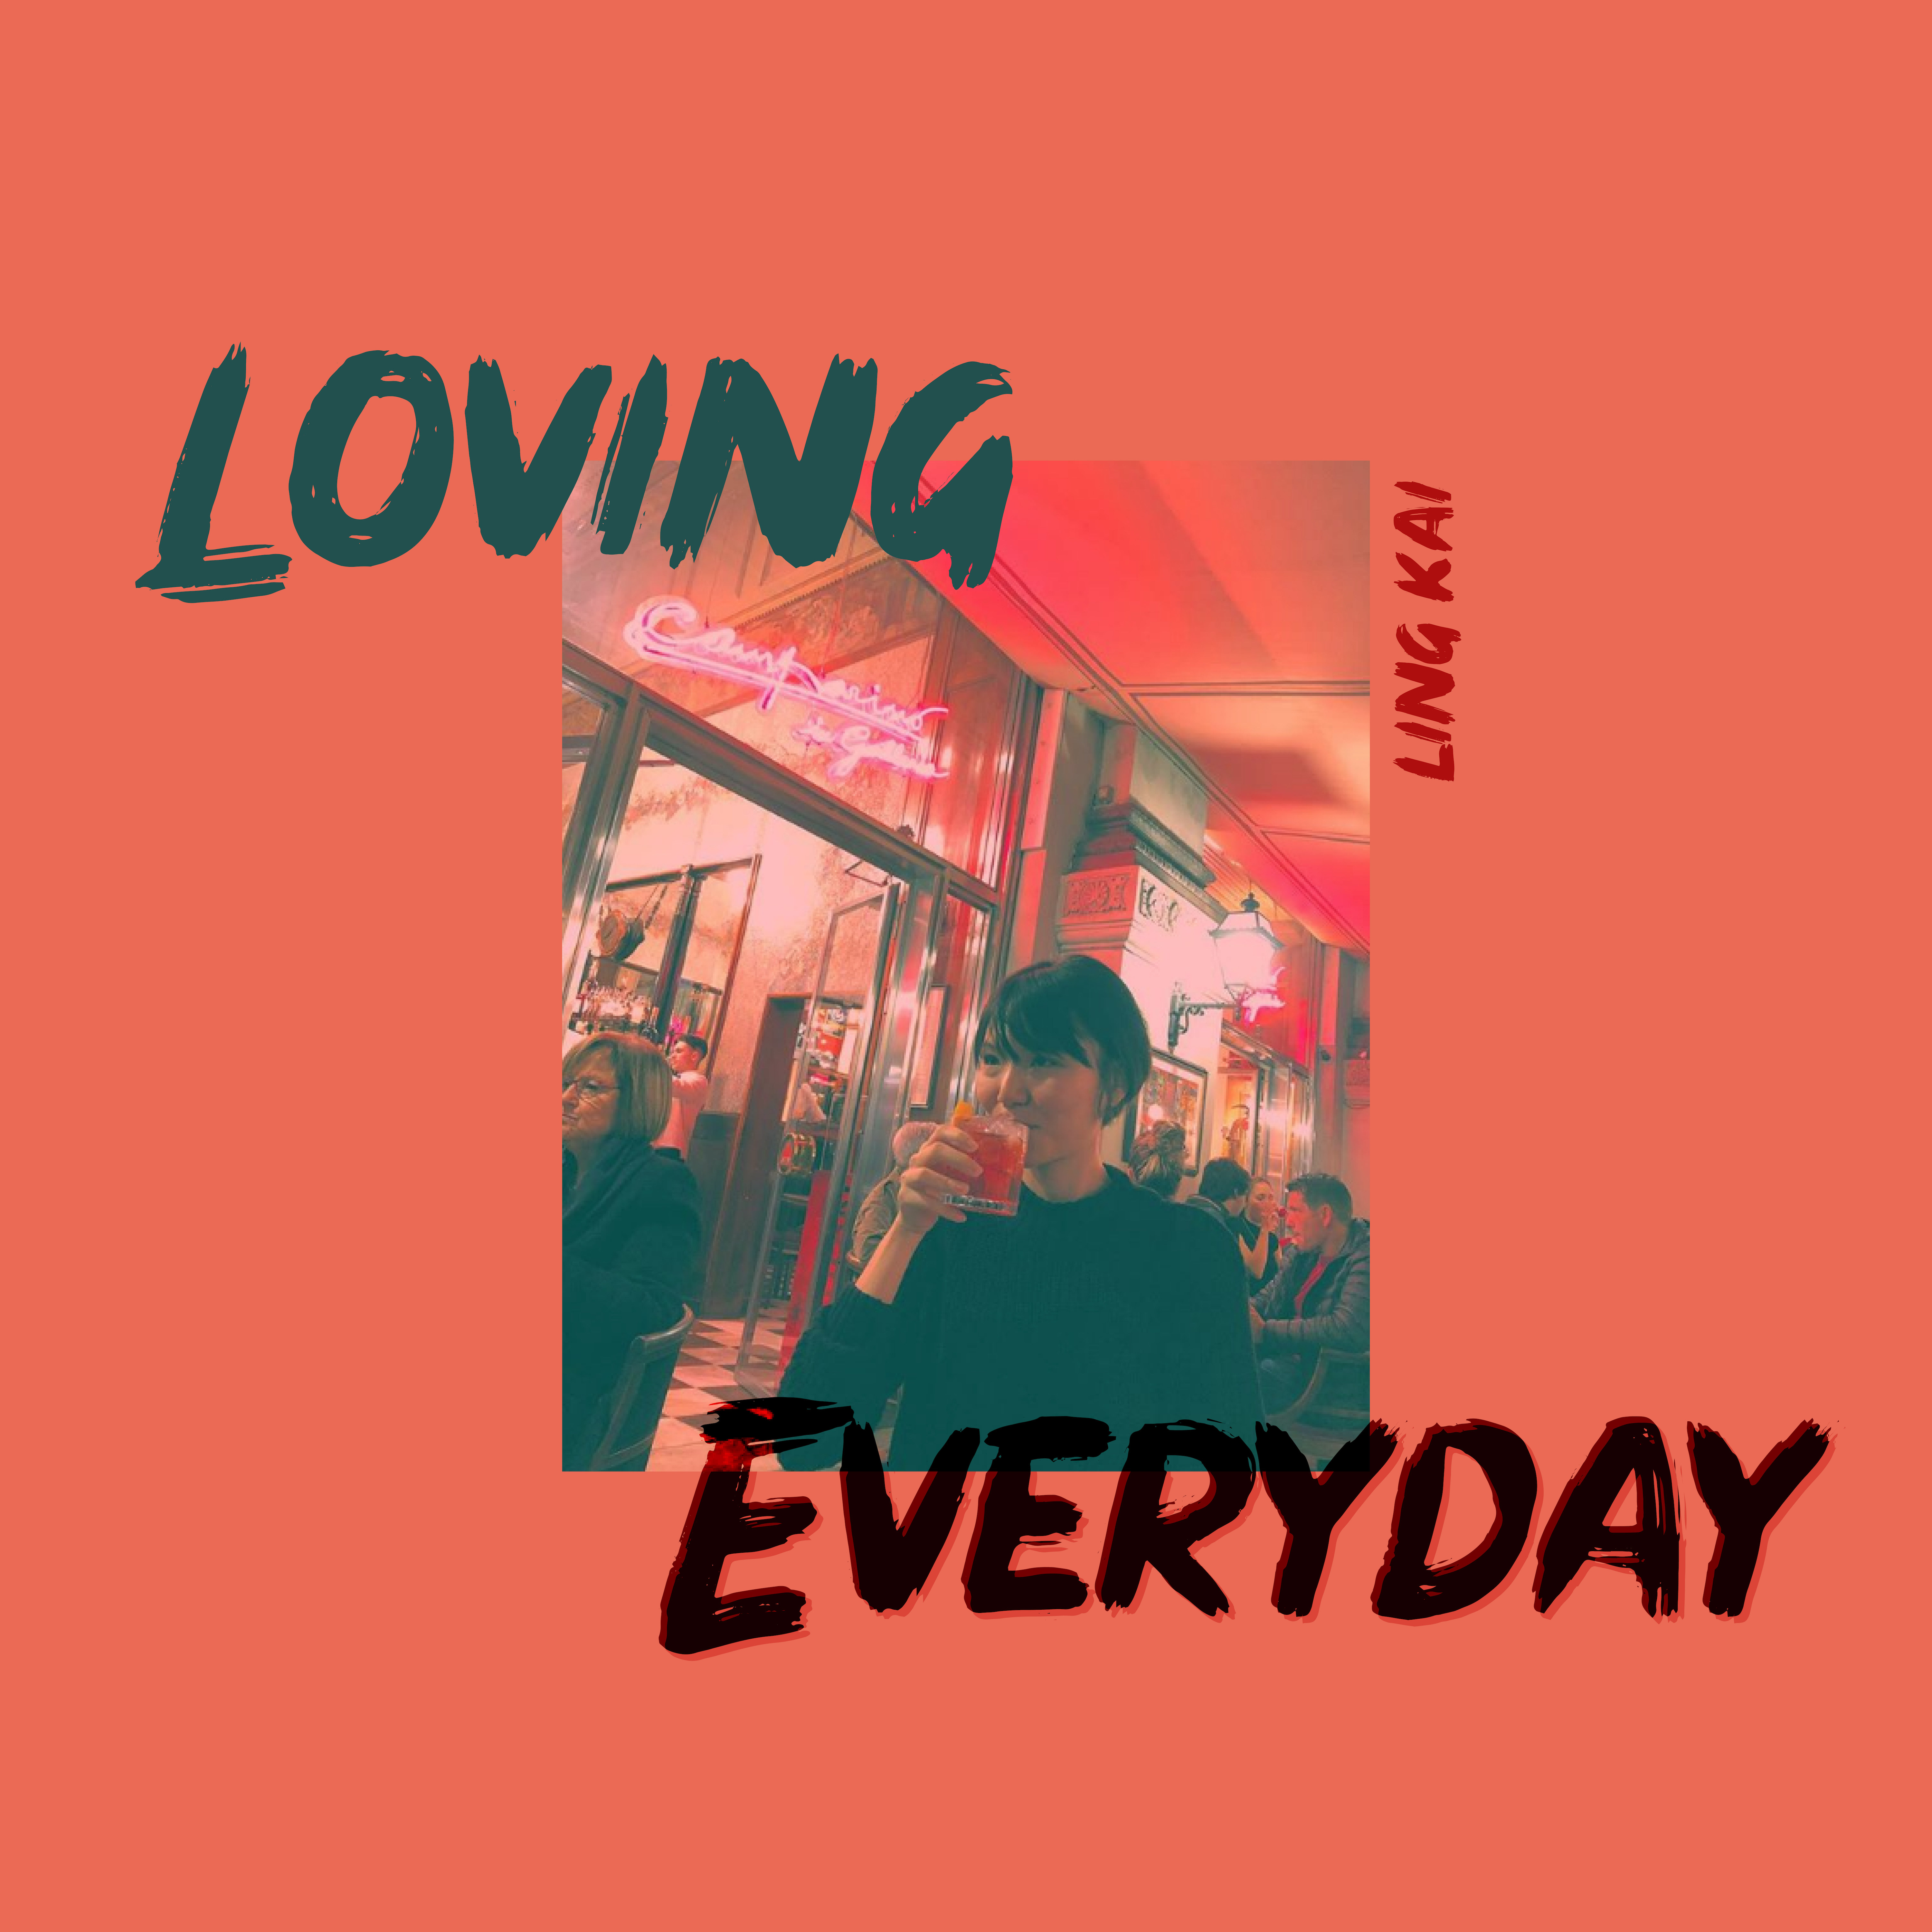 Lingkai   loving everyday album cover